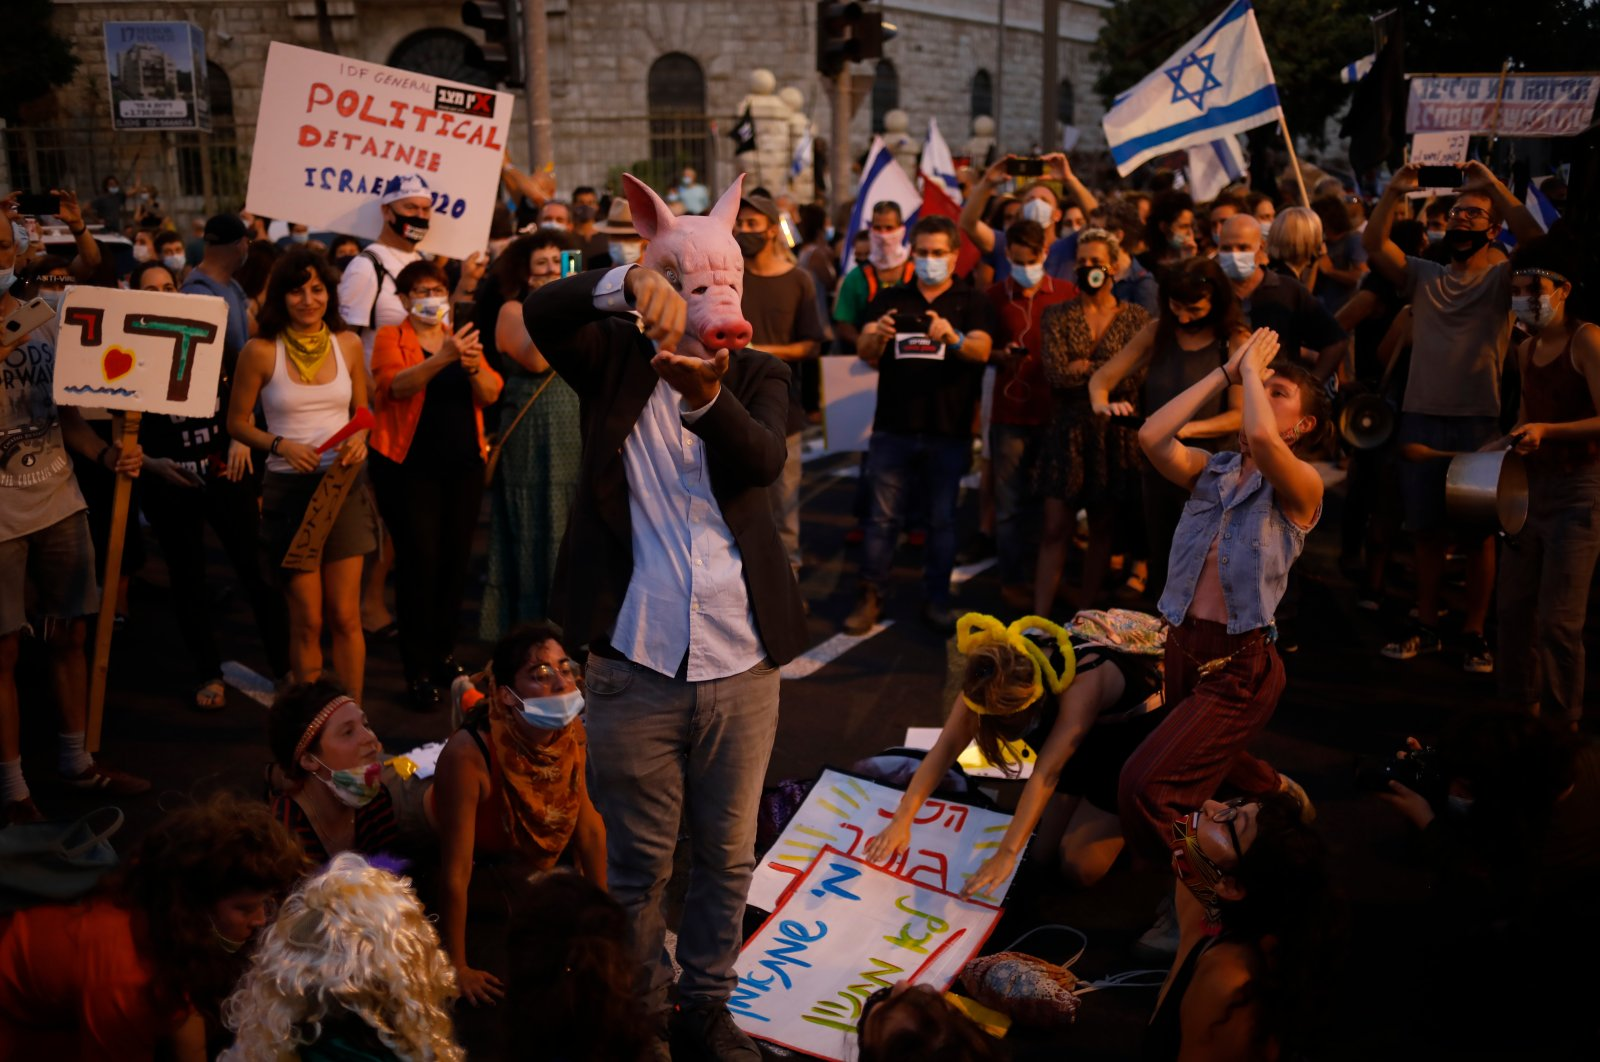 Demonstrators, defying orders to maintain social distancing requirements, chant slogans and blow horns outside Prime Minister's residence in Jerusalem, July 14, 2020. (AP Photo)